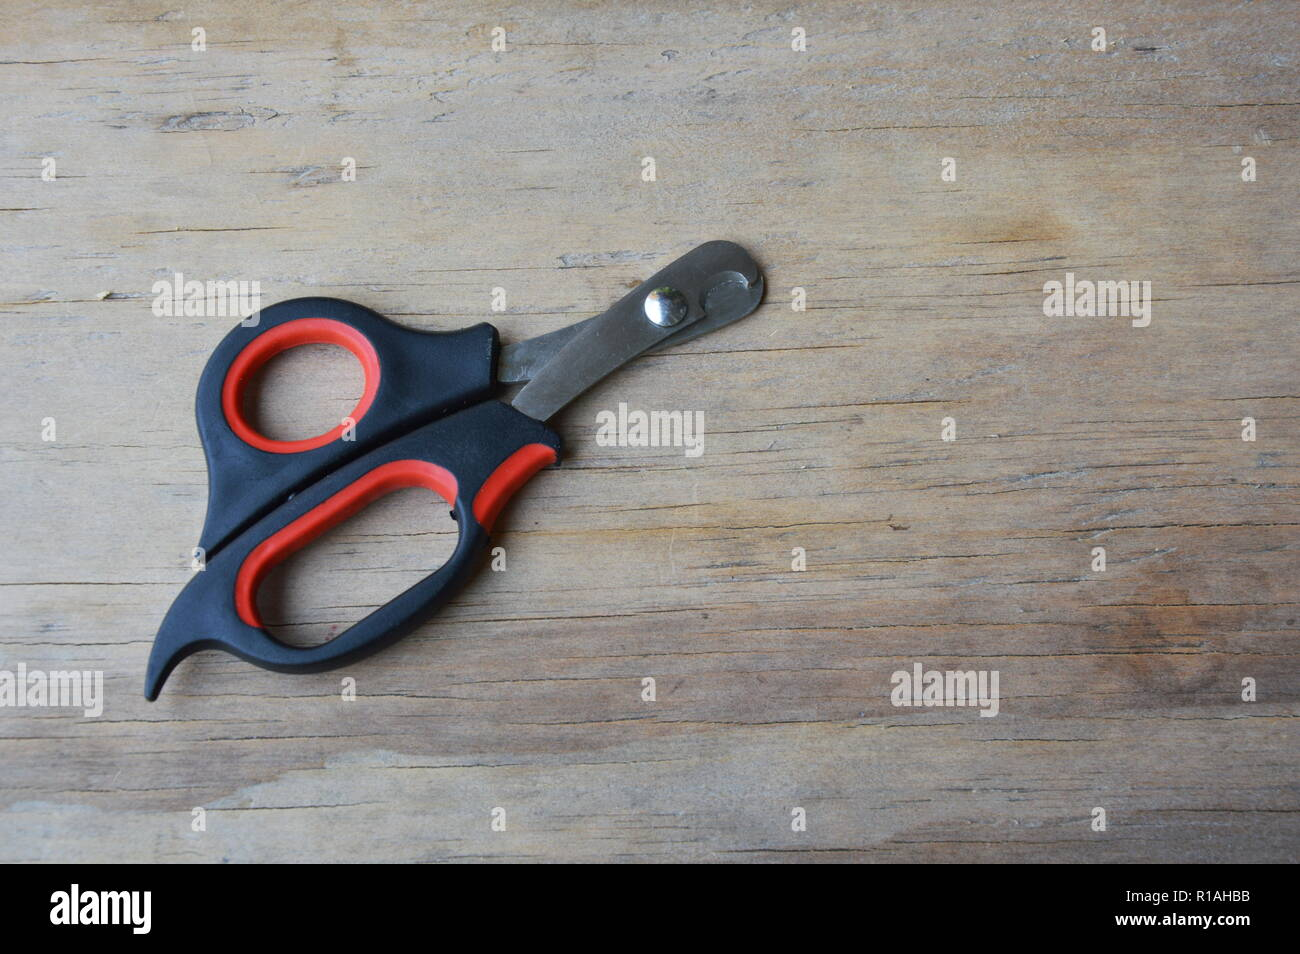 dog and cat nail nipper on wooden board - Stock Image